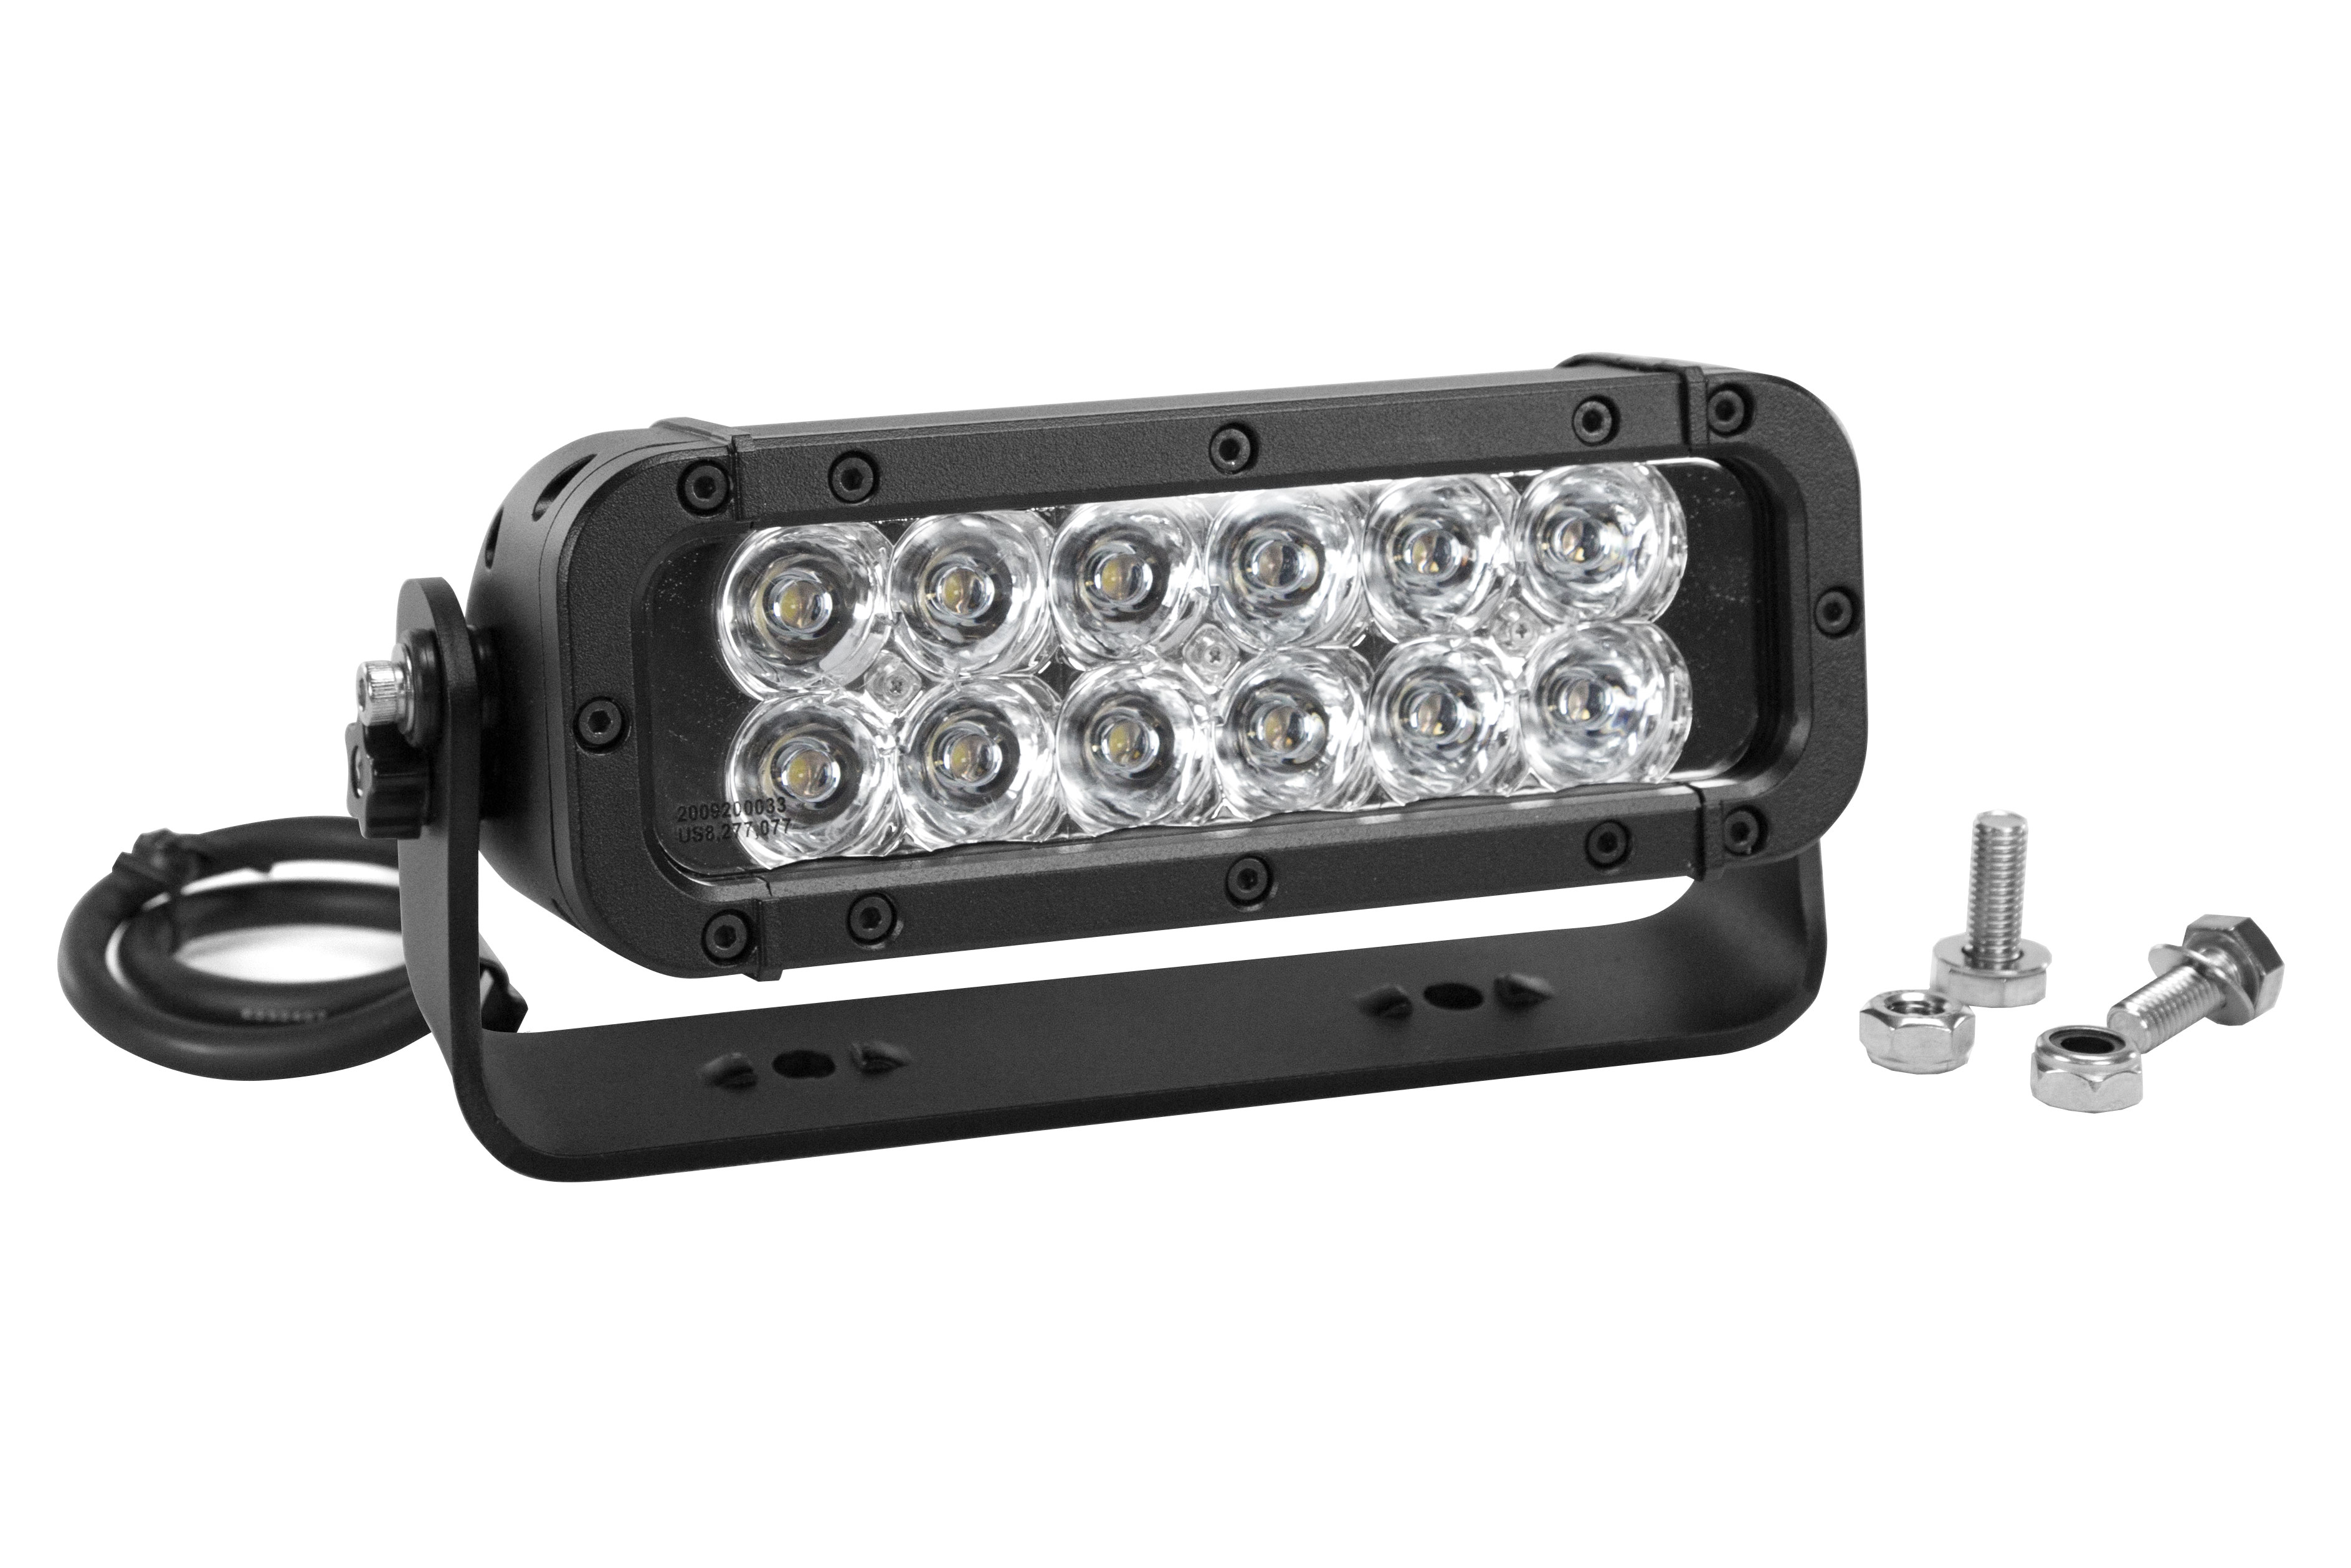 Larson electronics debuts explosion proof light fixtures in new xxx 36 watt led light bar to be featured in the new xxx the return of xander cage filmtrunnion mounted led light bar to be used in new film aloadofball Images